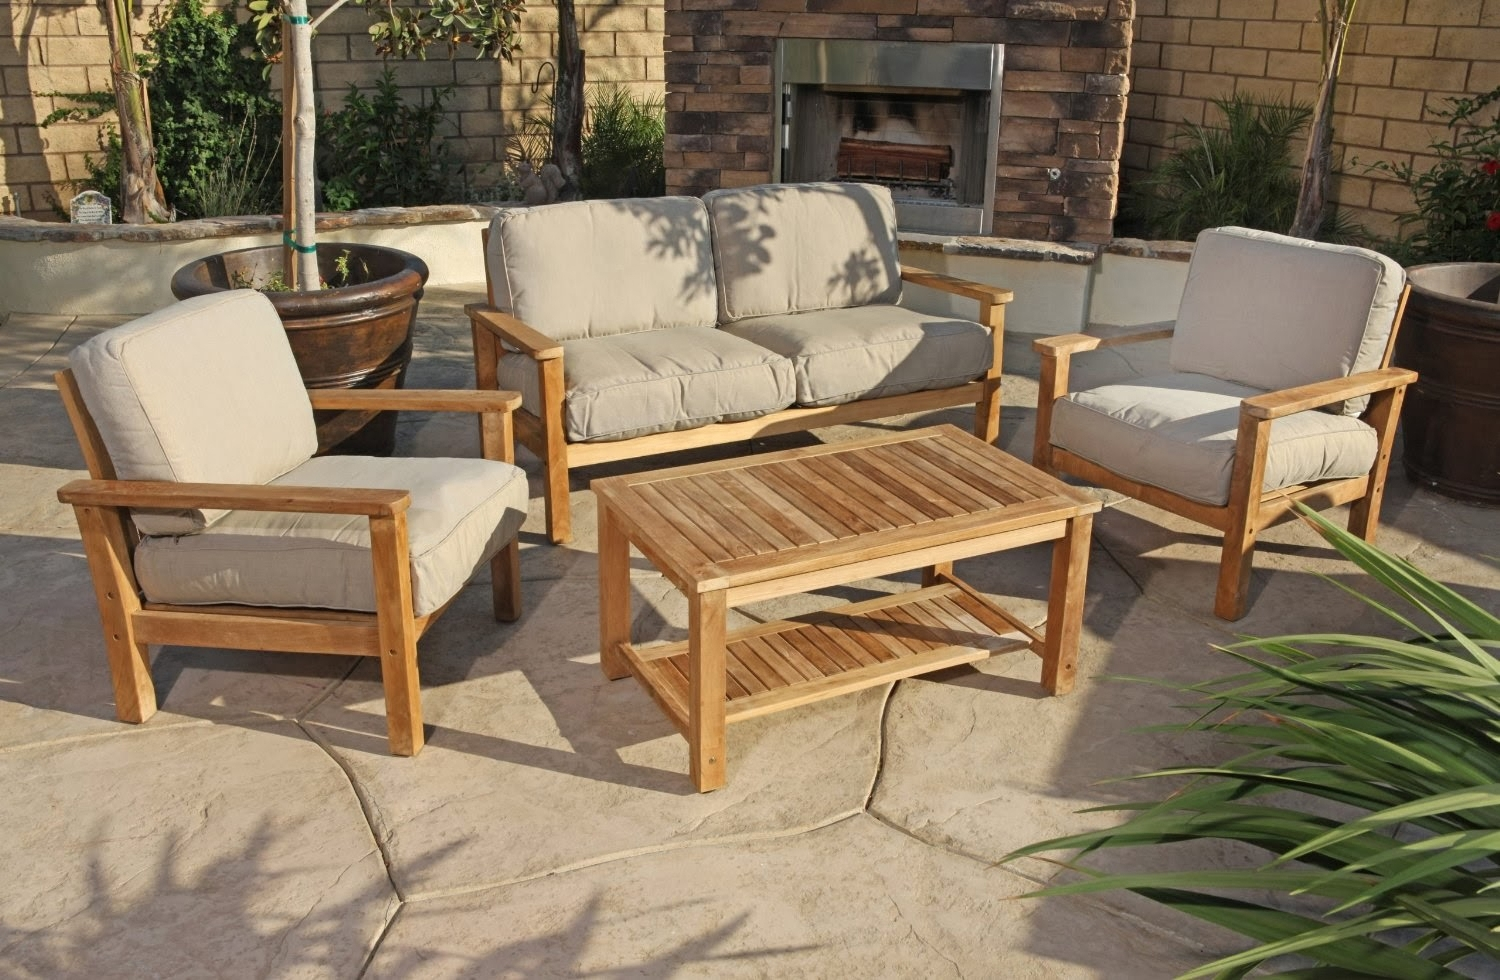 Preferred Patio : Teak Patio Conversation Sets Outdoor Lounge Furniture The Within Teak Patio Conversation Sets (View 5 of 20)